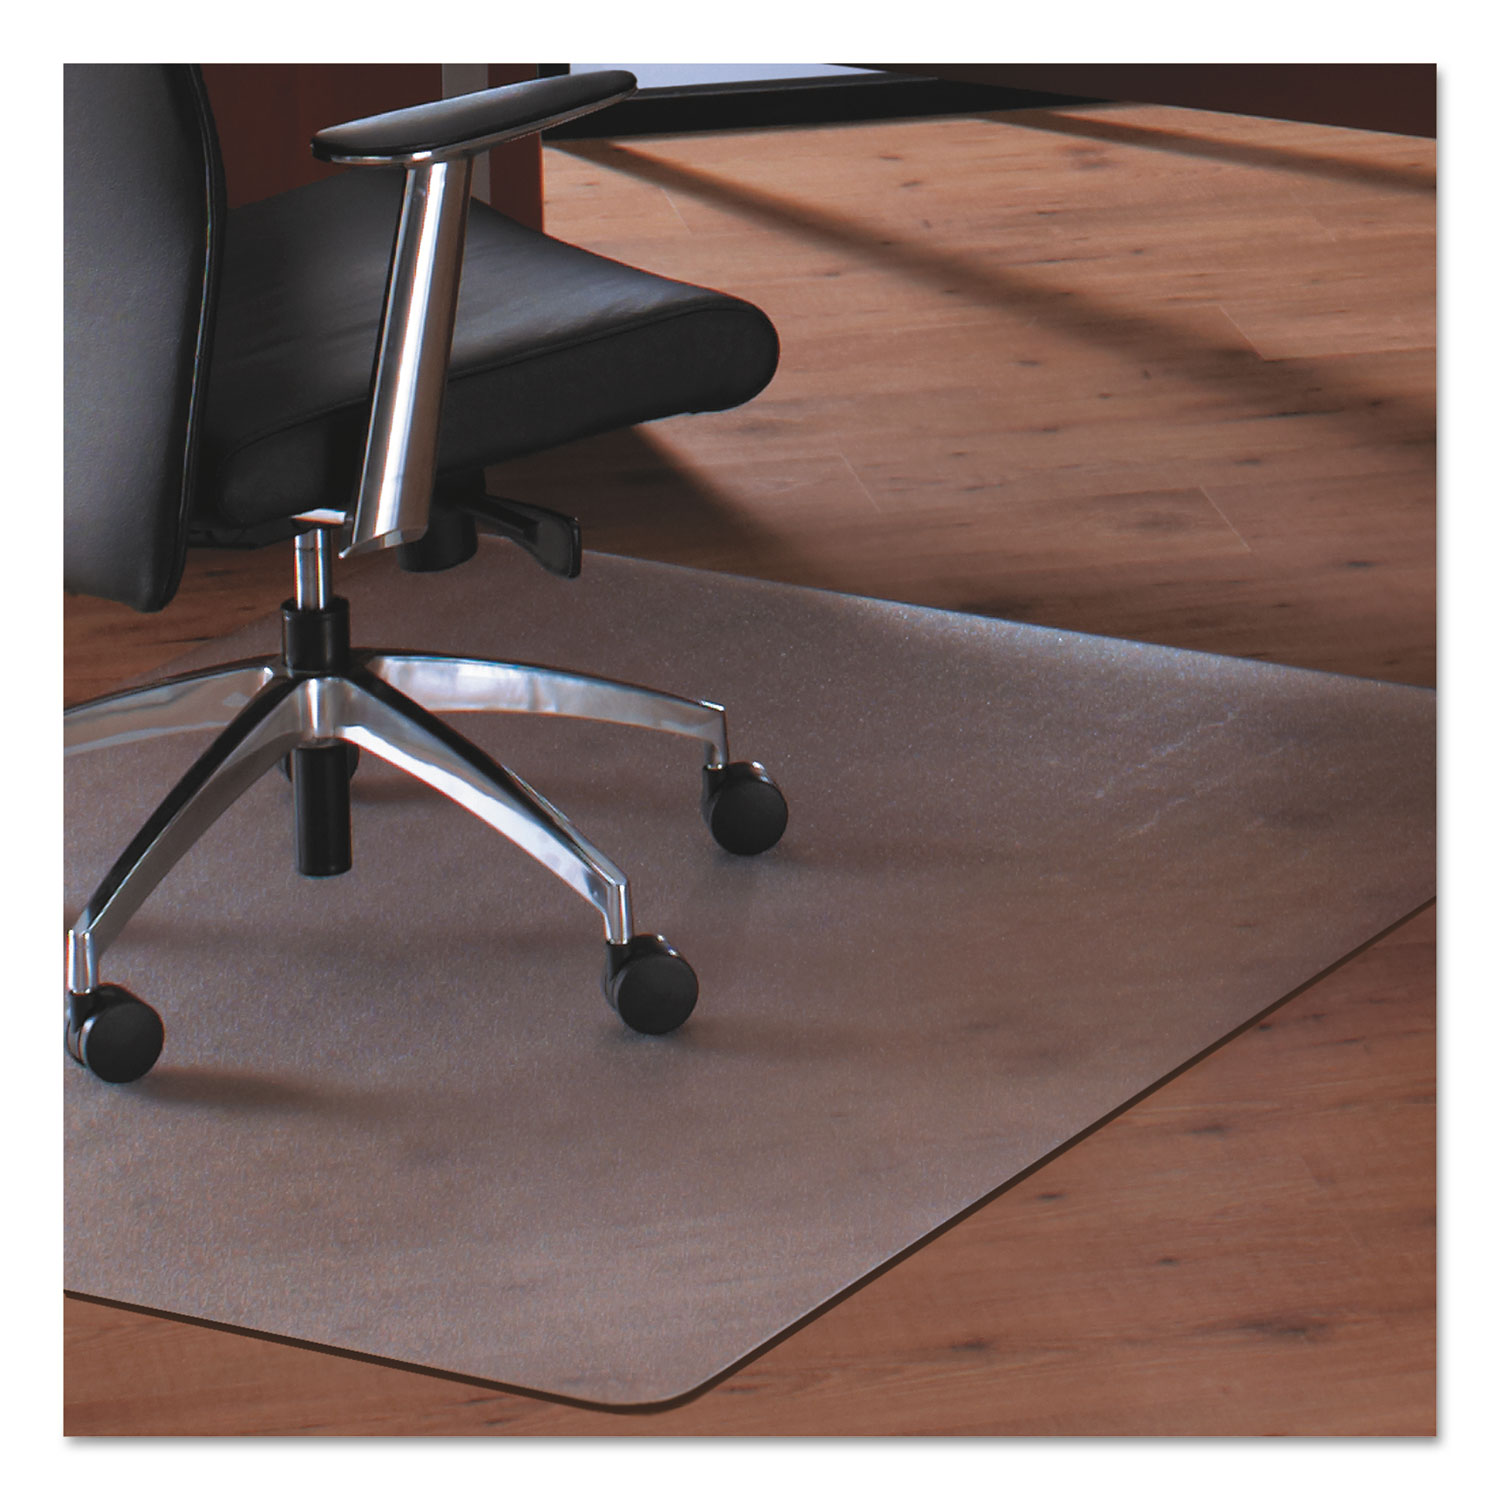 Cleartex MegaMat Heavy Duty Polycarbonate Mat For Hard Floor All Carpet 46 X